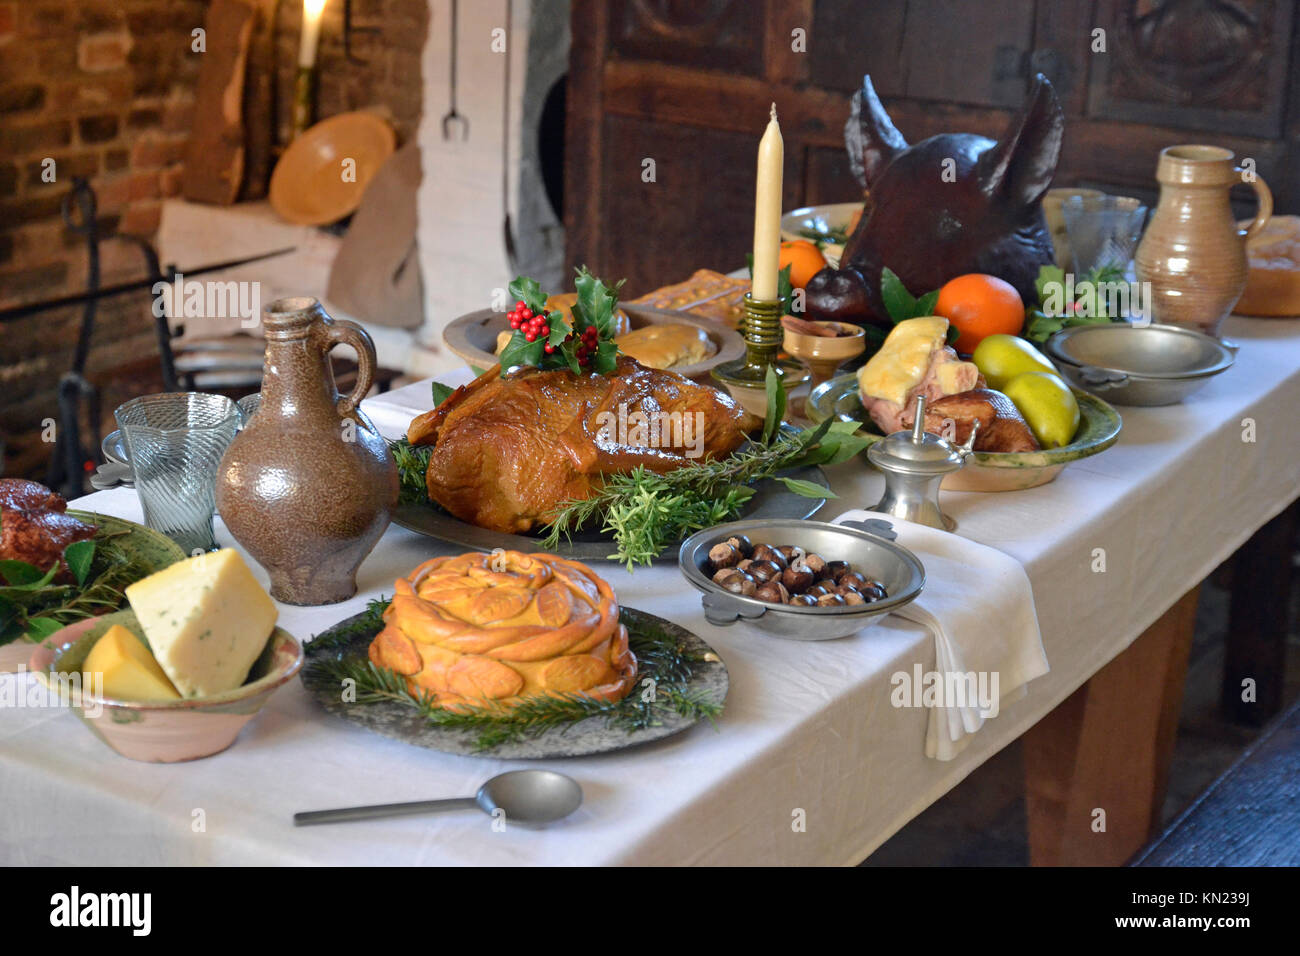 Tudor meal stock photos images alamy